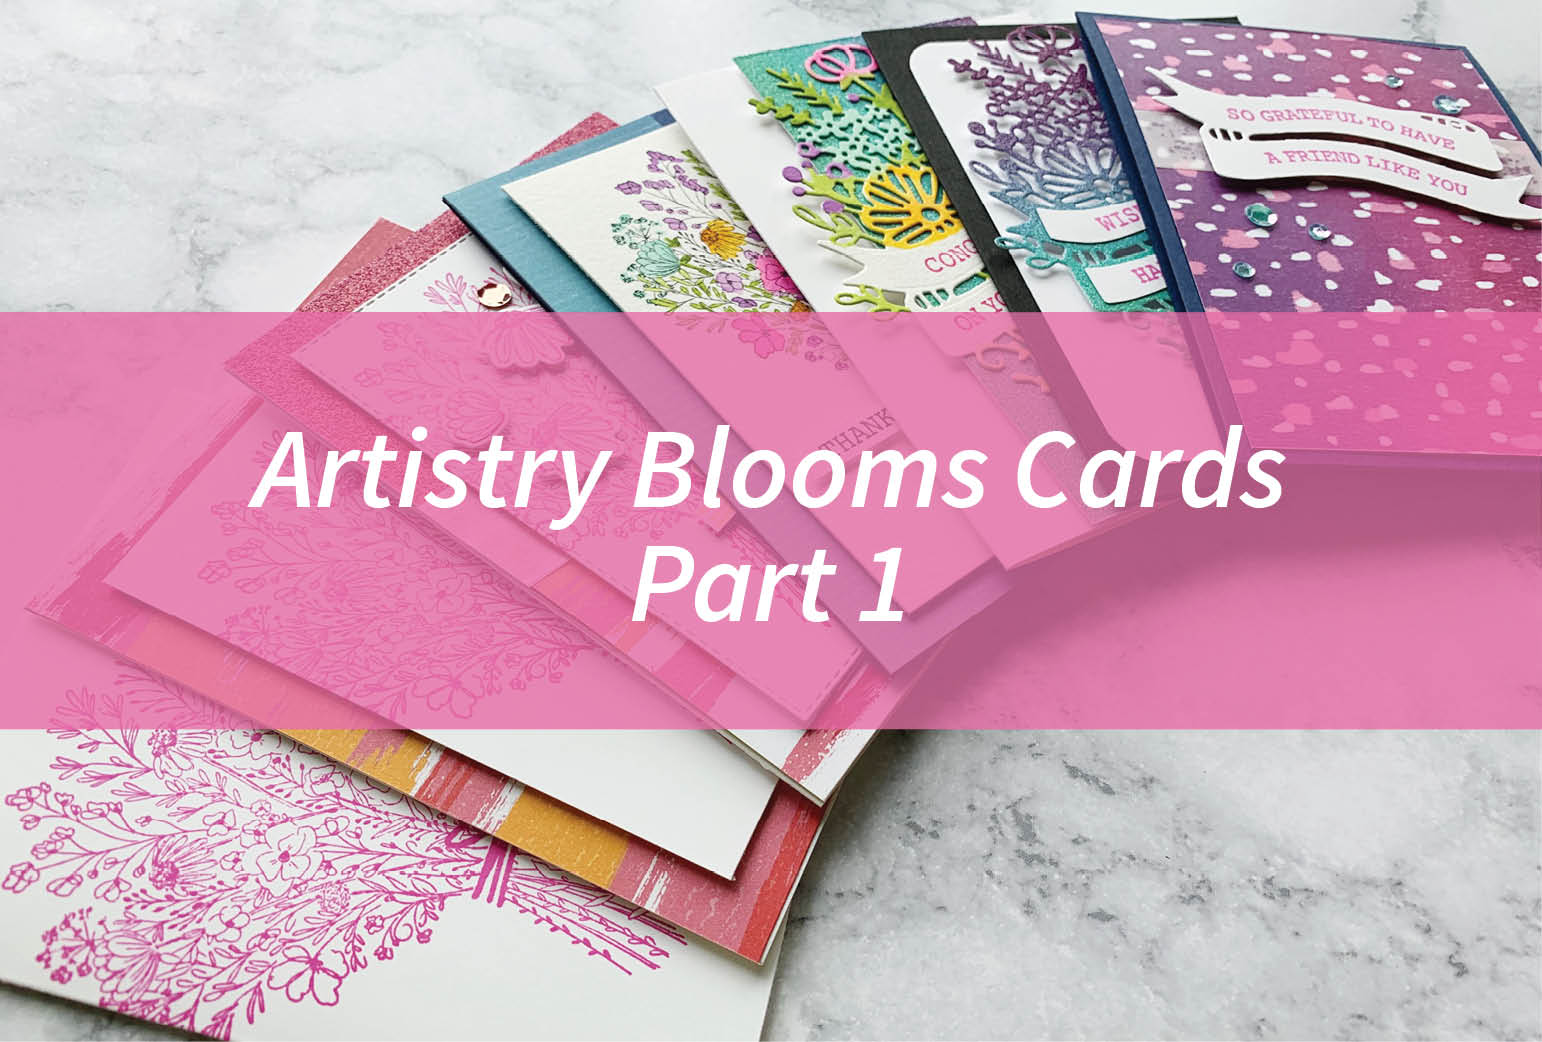 Artistry Blooms Cards Part 1